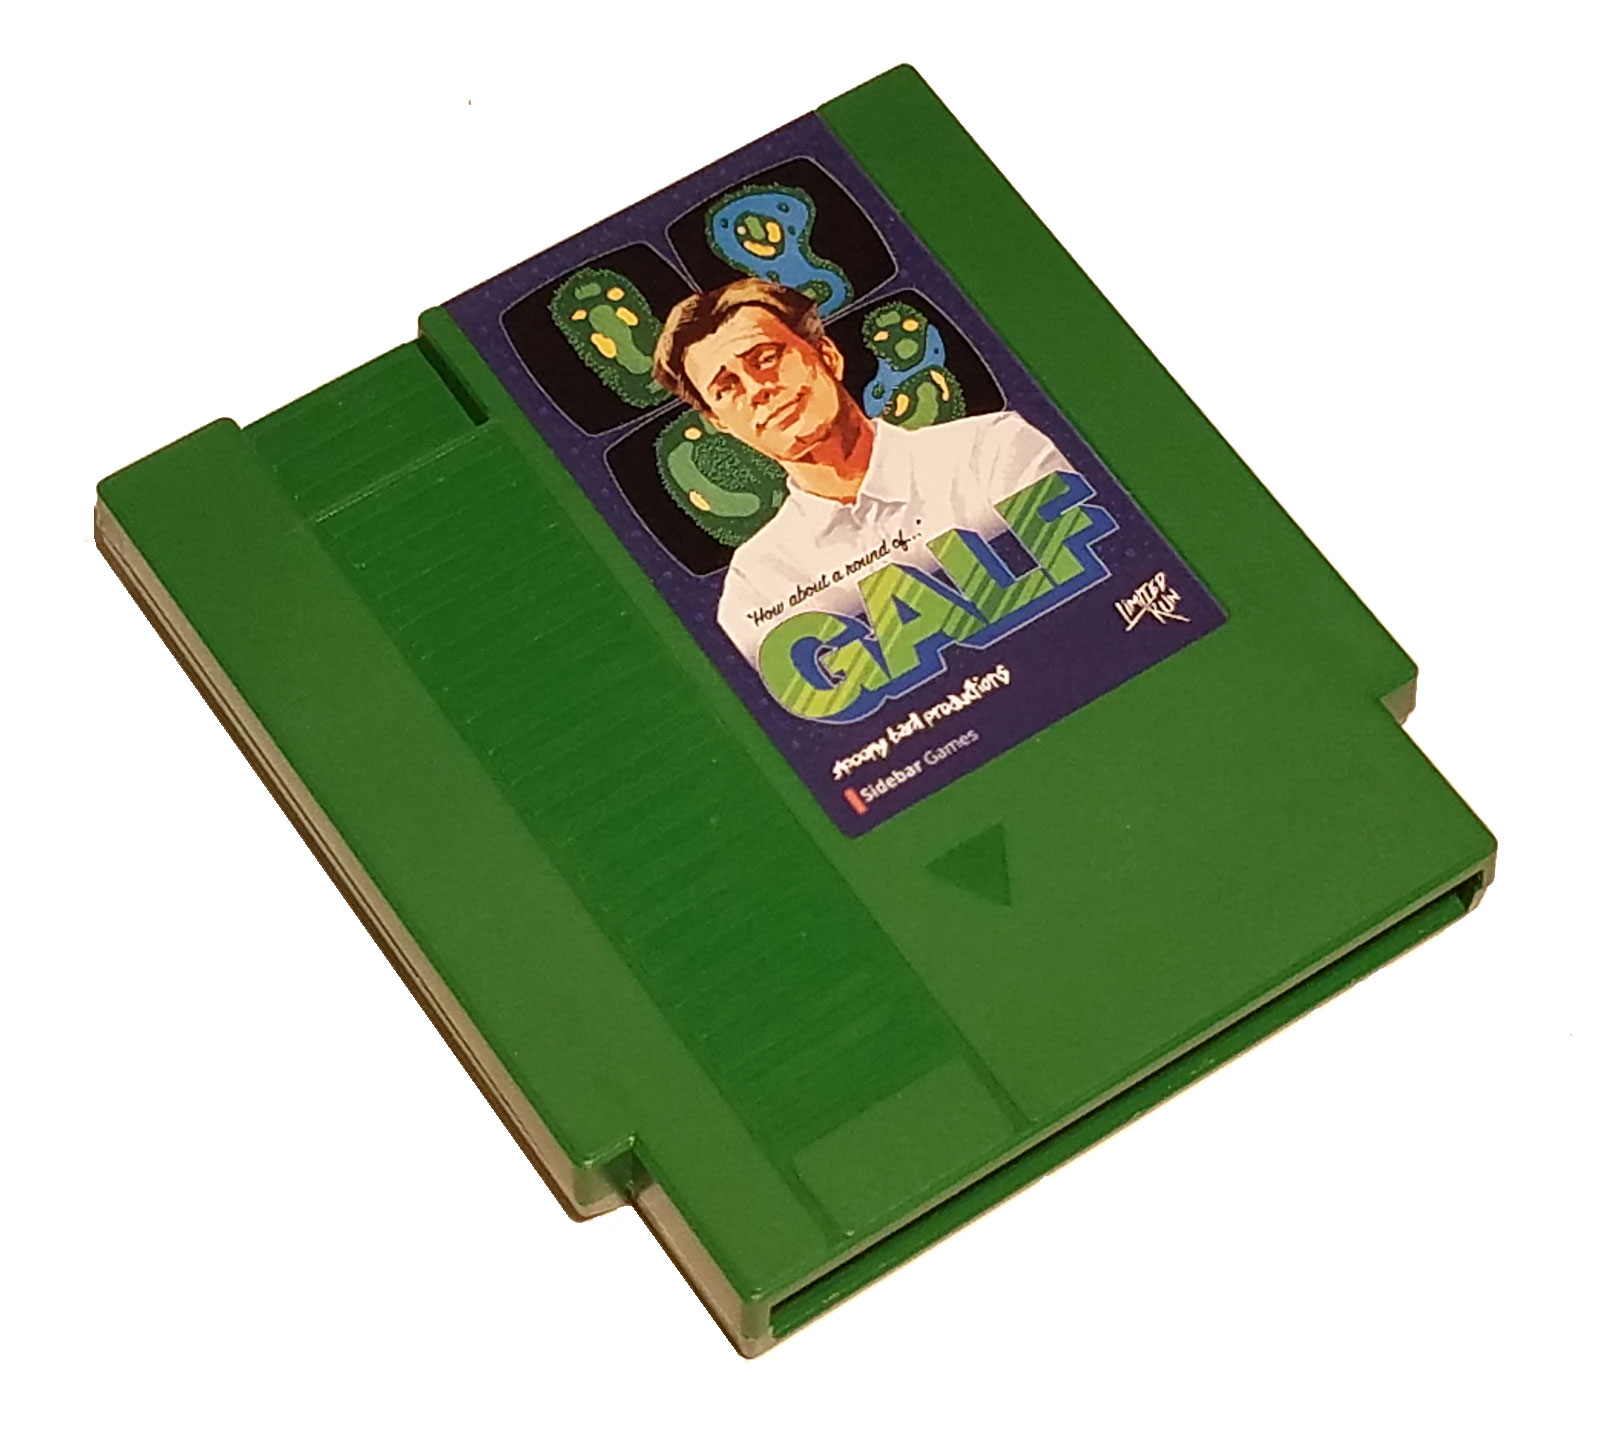 The dark green Galf cartridge